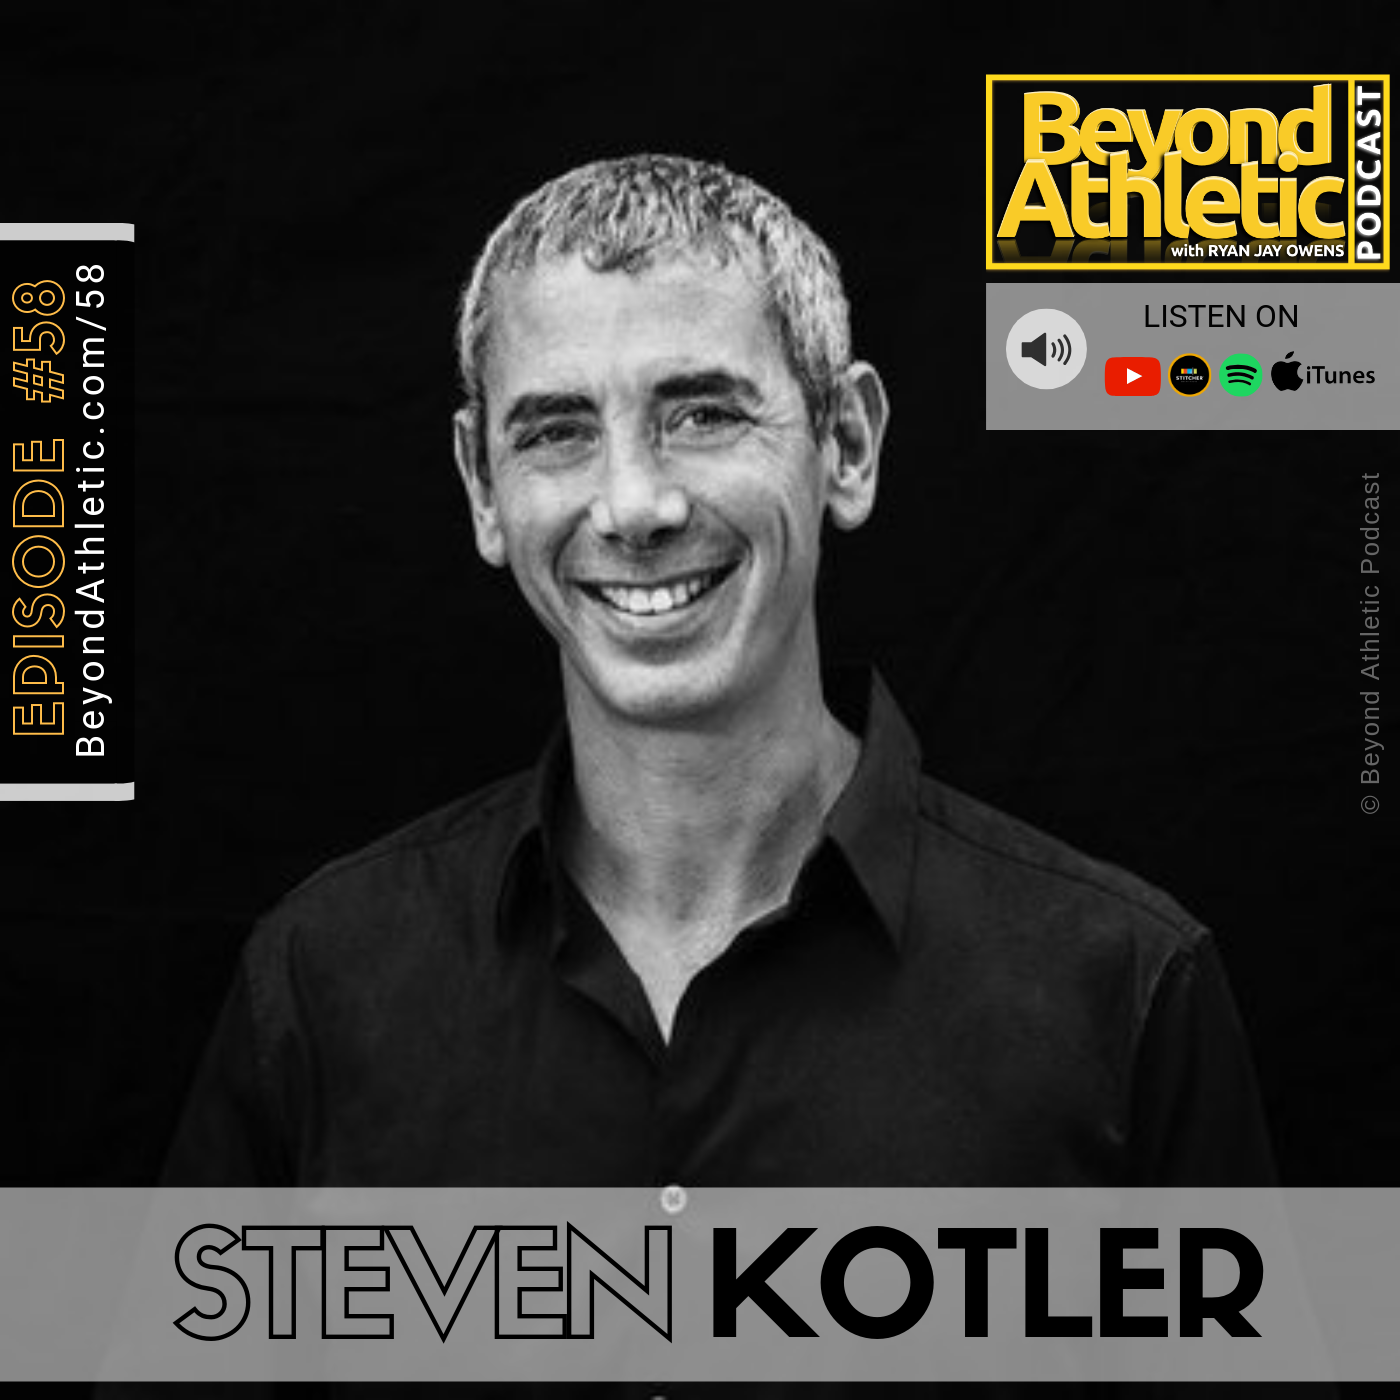 Steven Kotlerof Flow Research Collective on Beyond Athletic Podcast